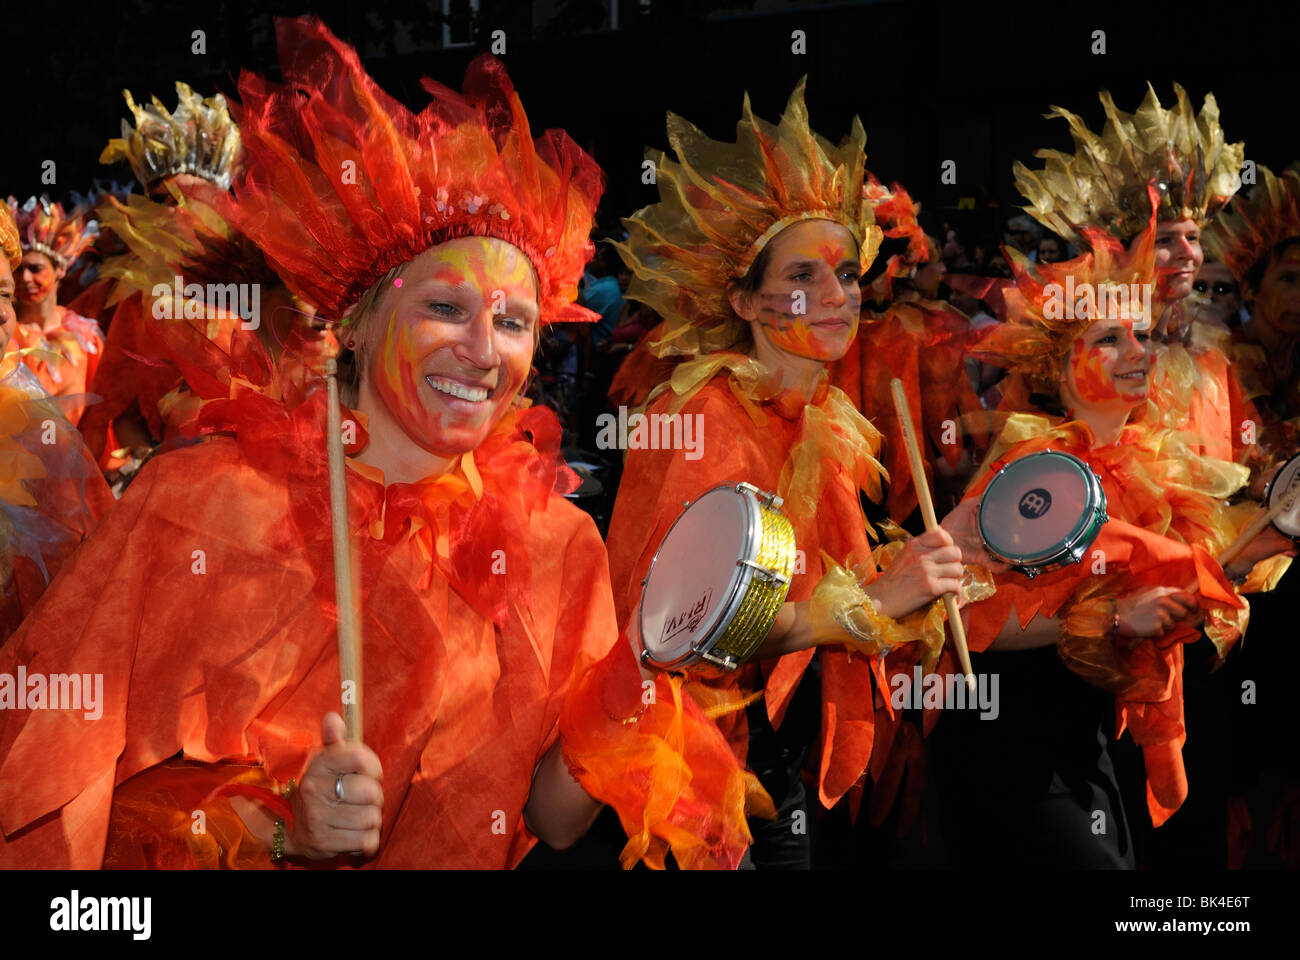 Karneval der Kulturen, Carnival of Cultures, Berlin, Kreuzberg district, Germany, Europe. - Stock Image